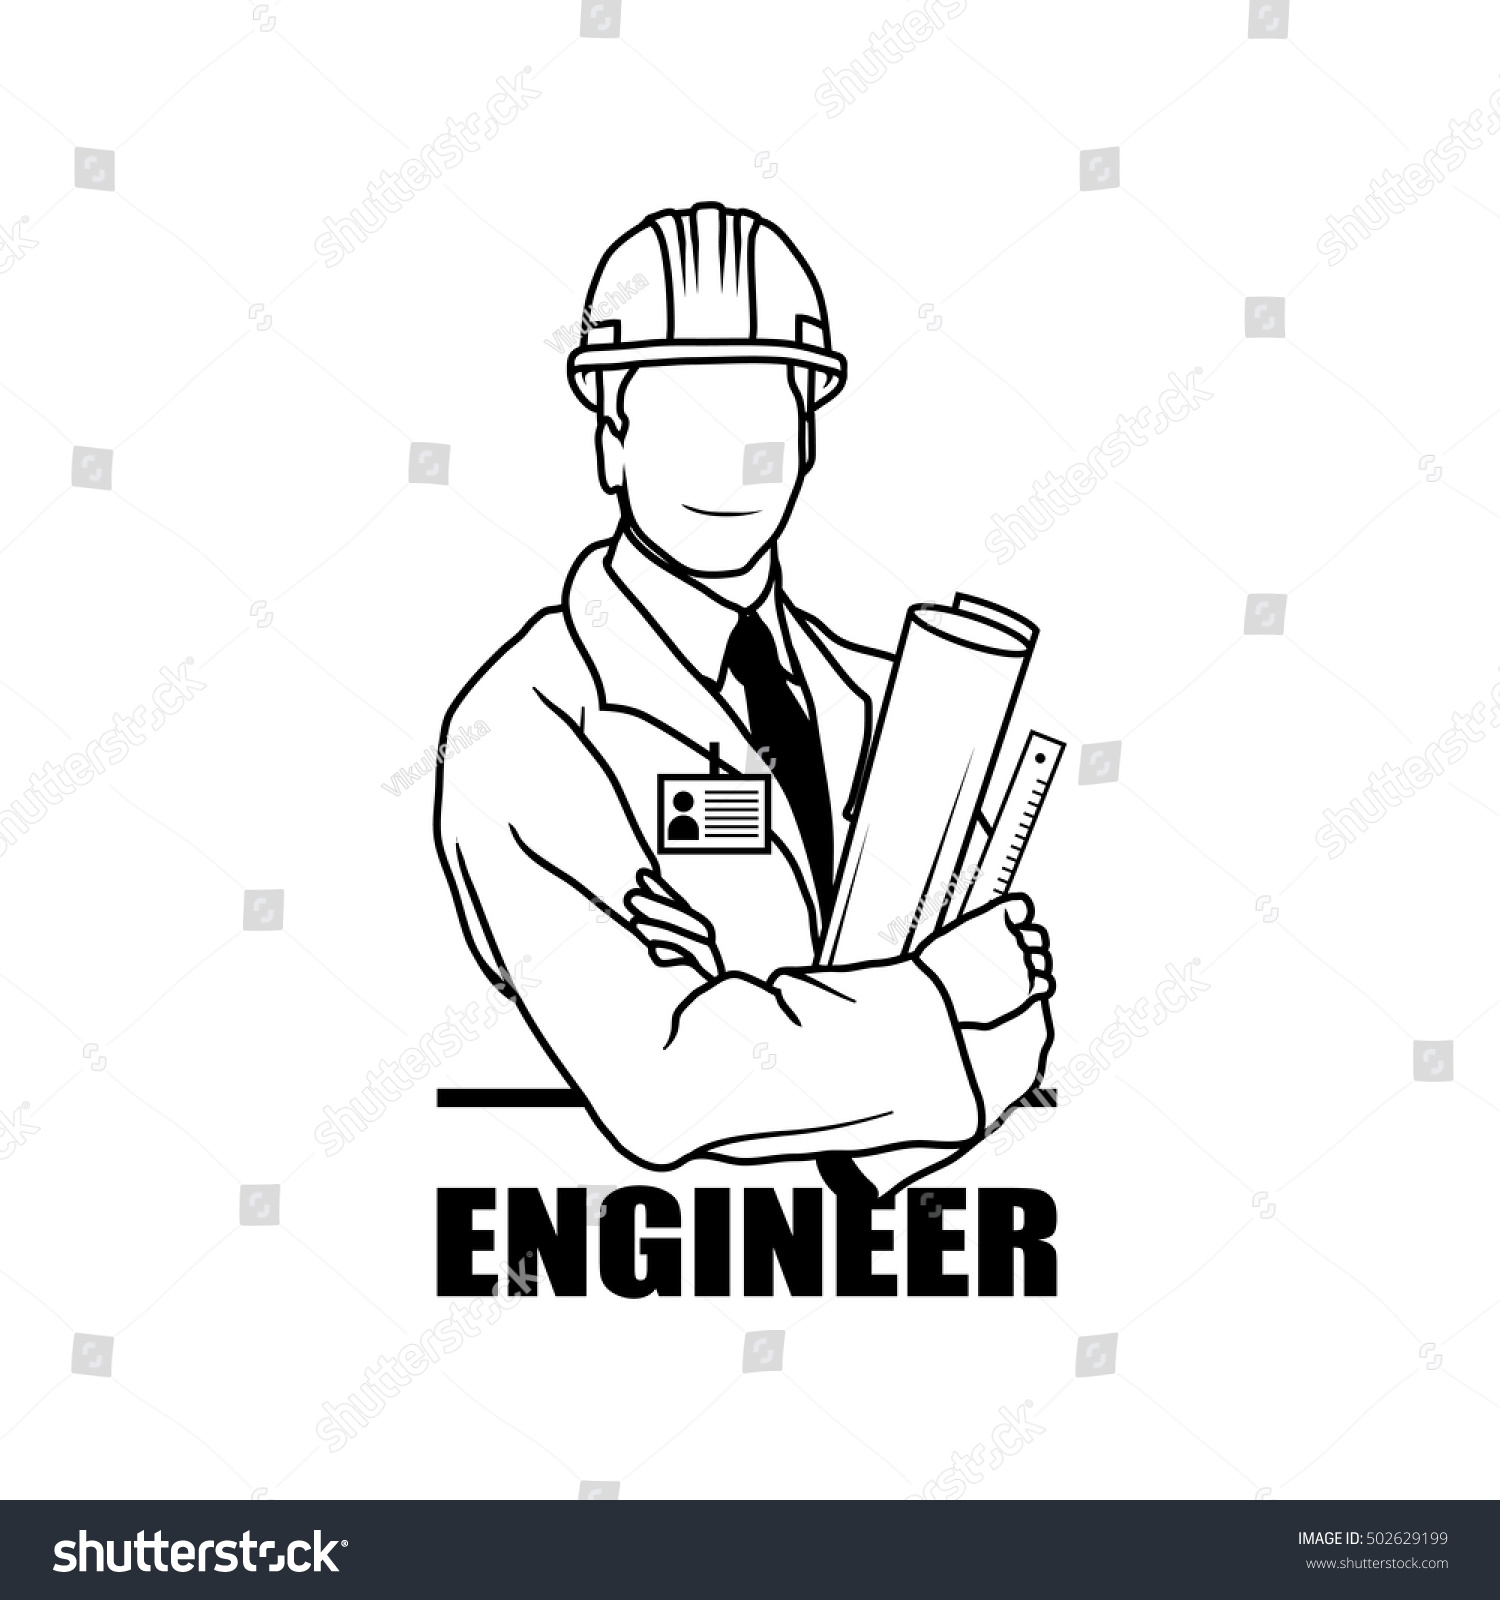 engineer drawing vector logo icon clipart stock vector royalty free